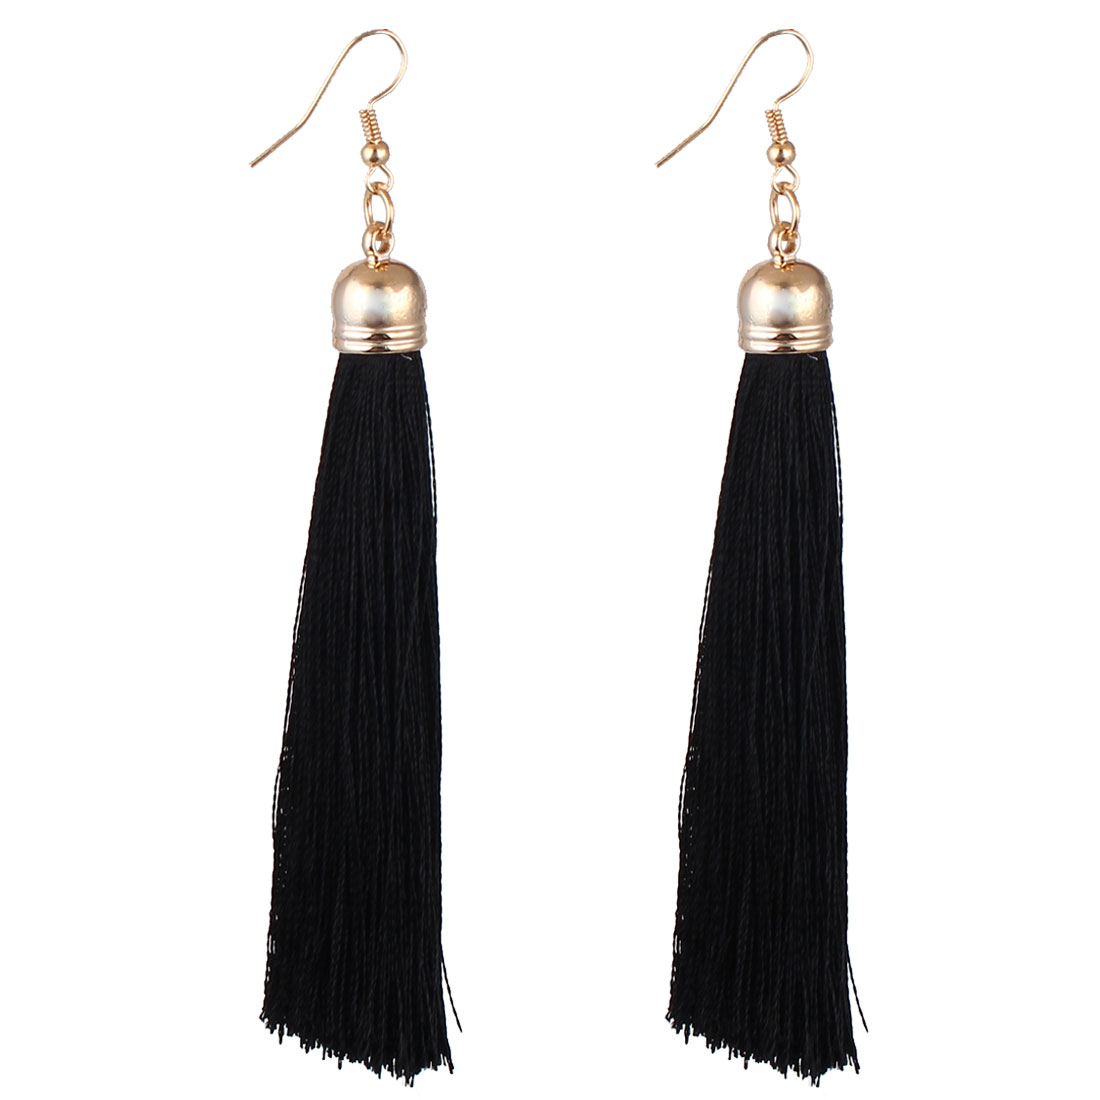 Women Lady Fish Hook Long Tassel Pendant Dangling Earrings Eardrop Black Pair